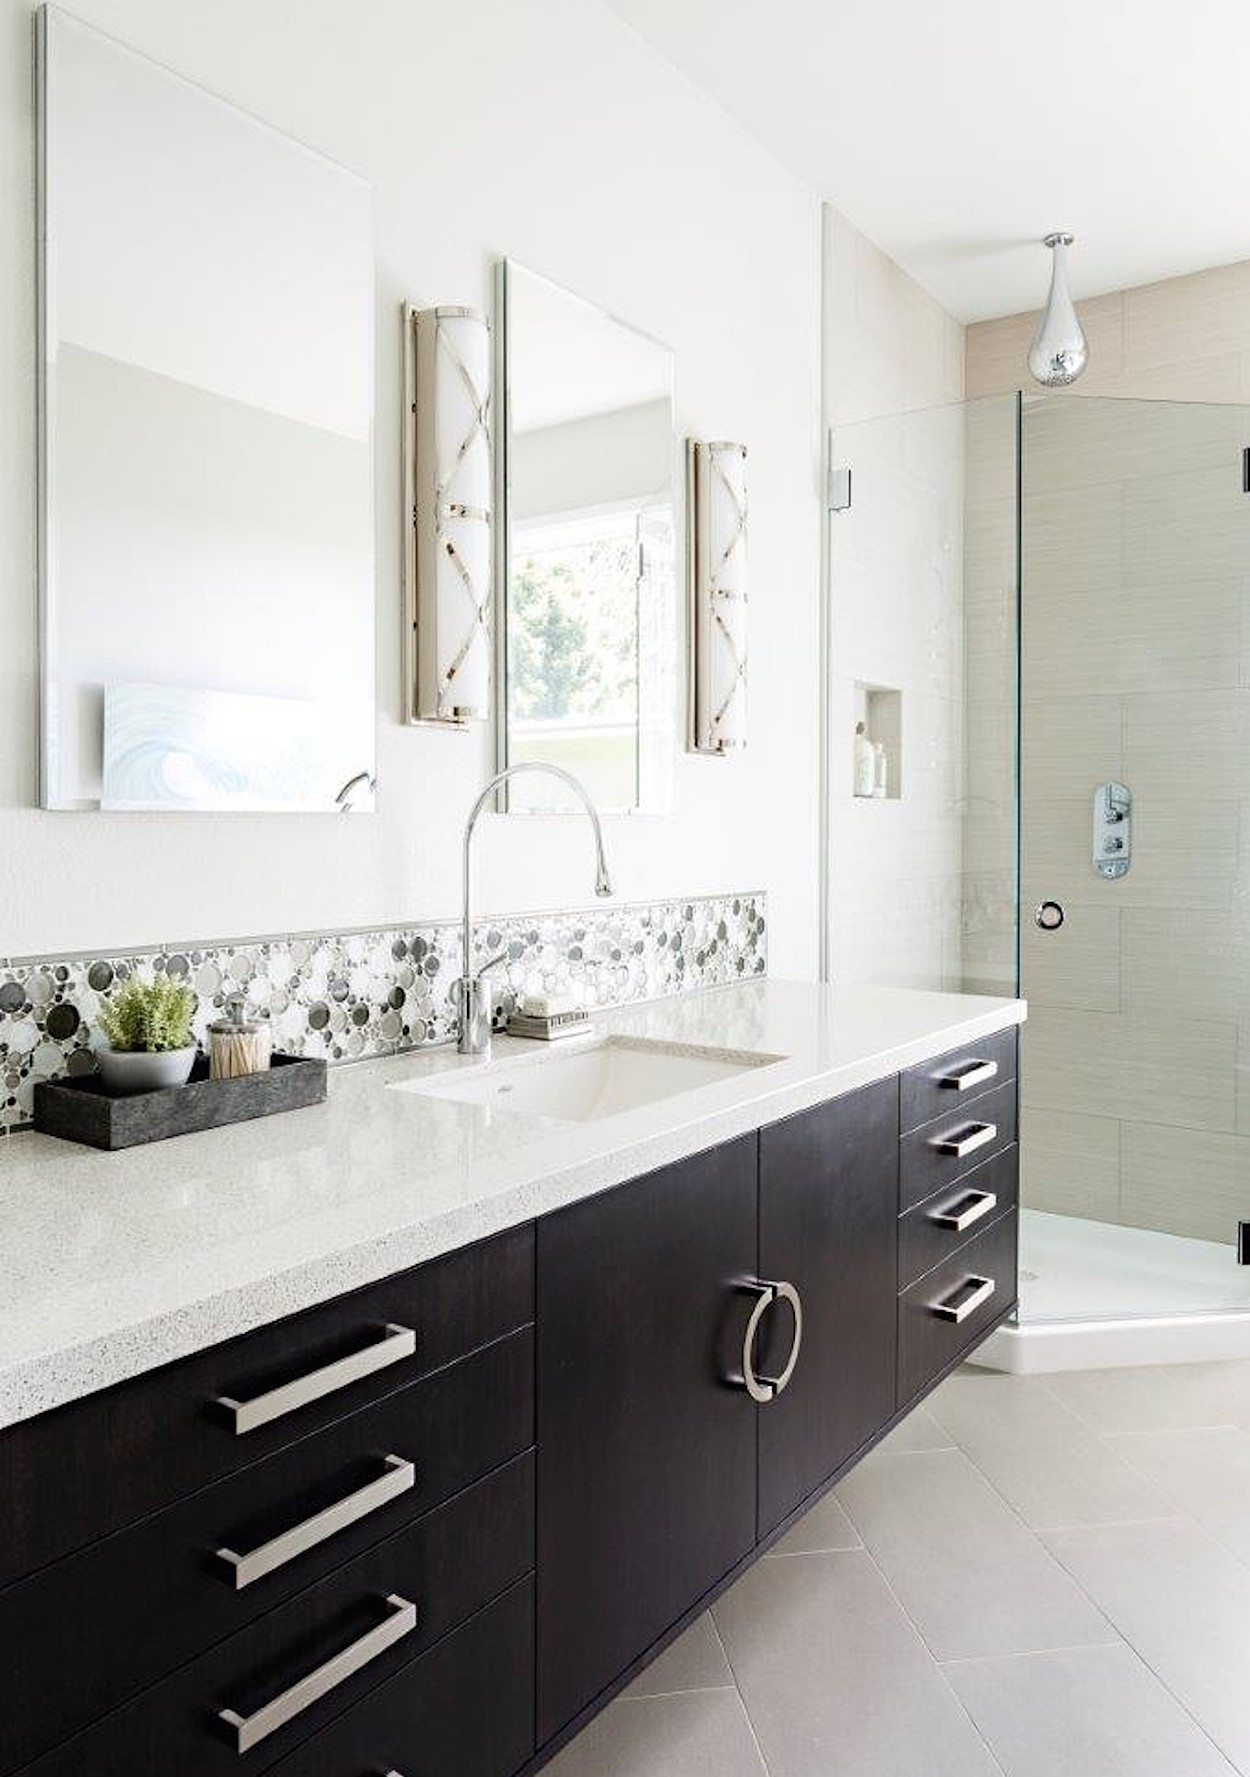 Bathroom Remodels On A Budget easy, budget mini bathroom makeovers | martha stewart